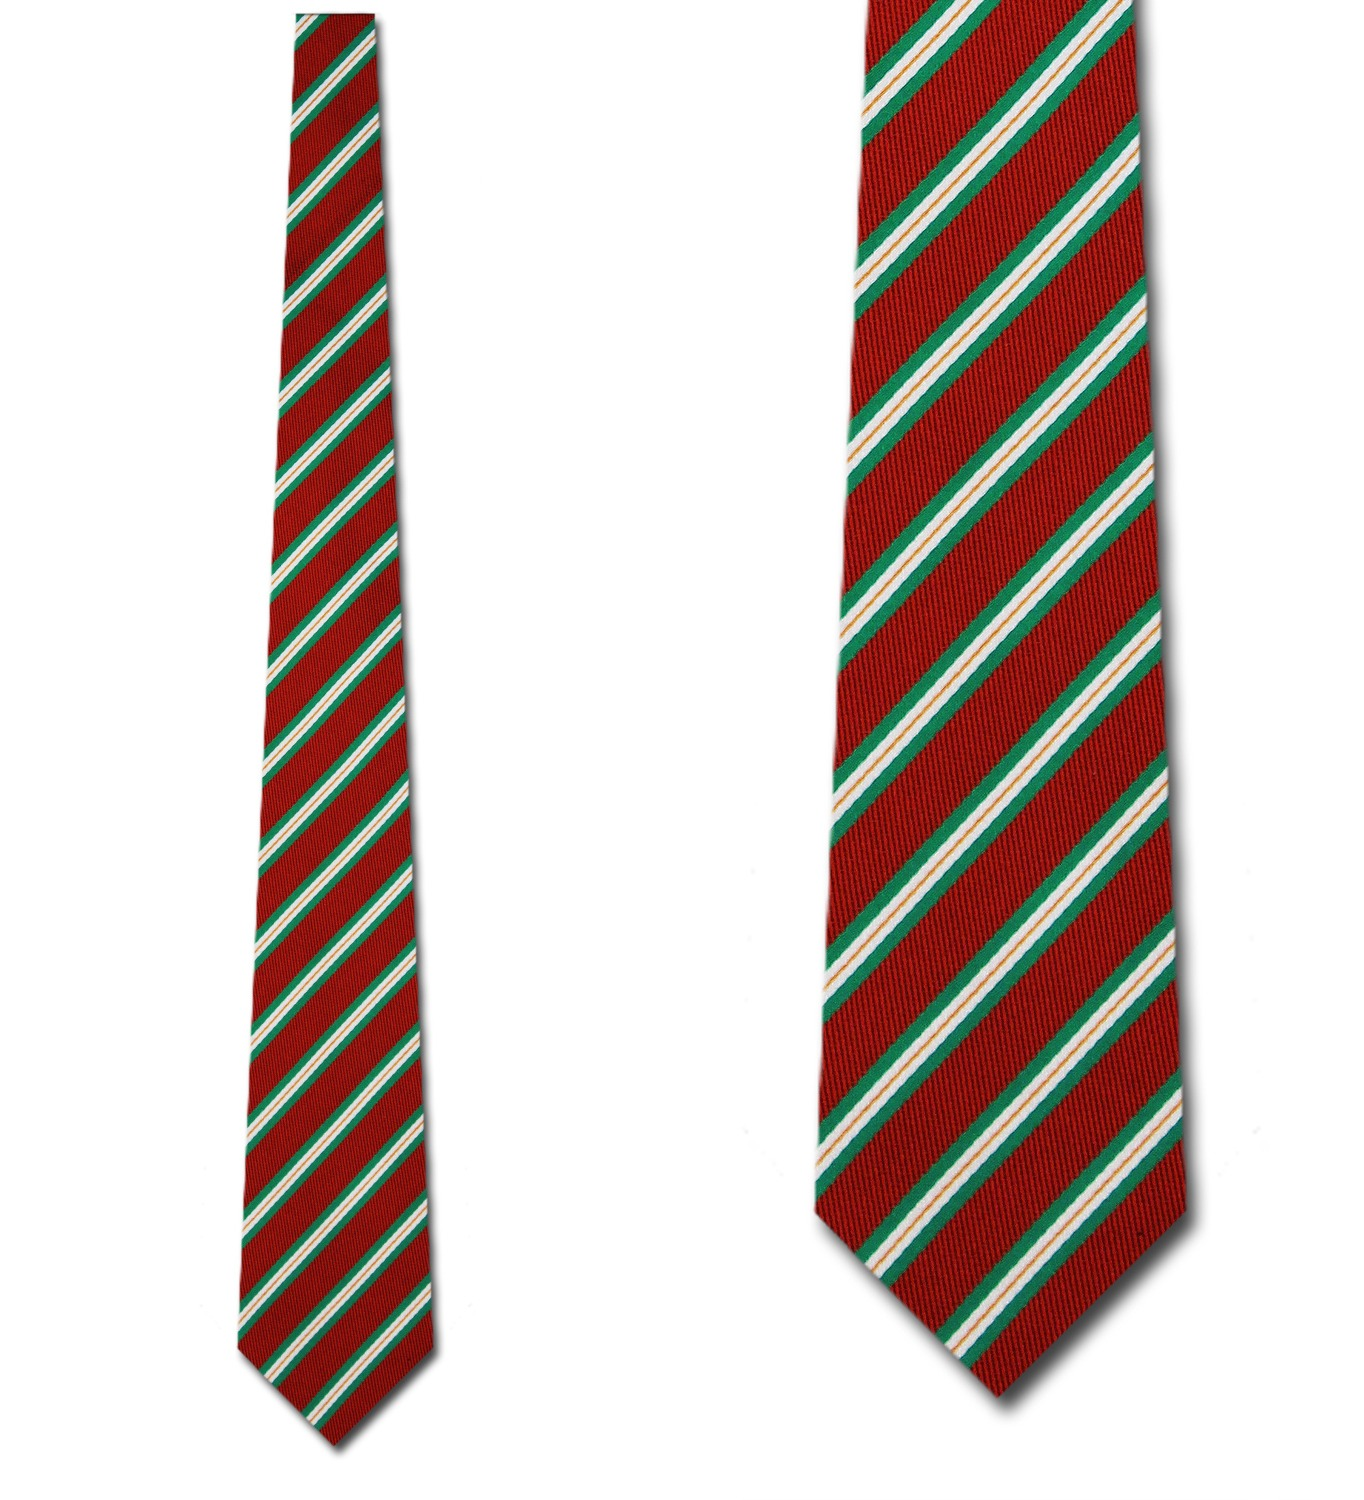 Green and White Stripes on Red Necktie Mens Tie